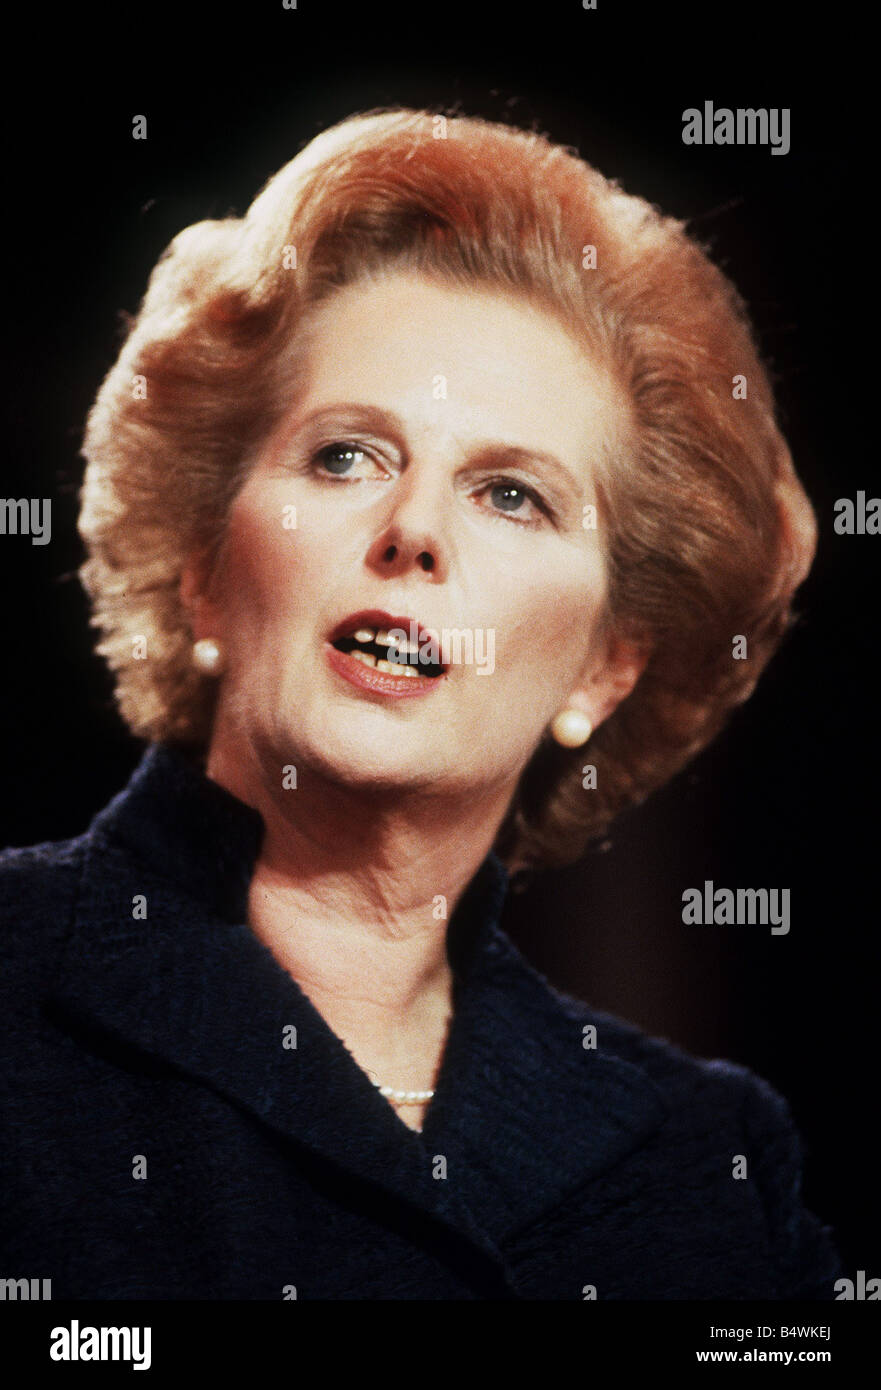 Prime Minister Margaret Thatcher In The 1980s Stock Photo Alamy